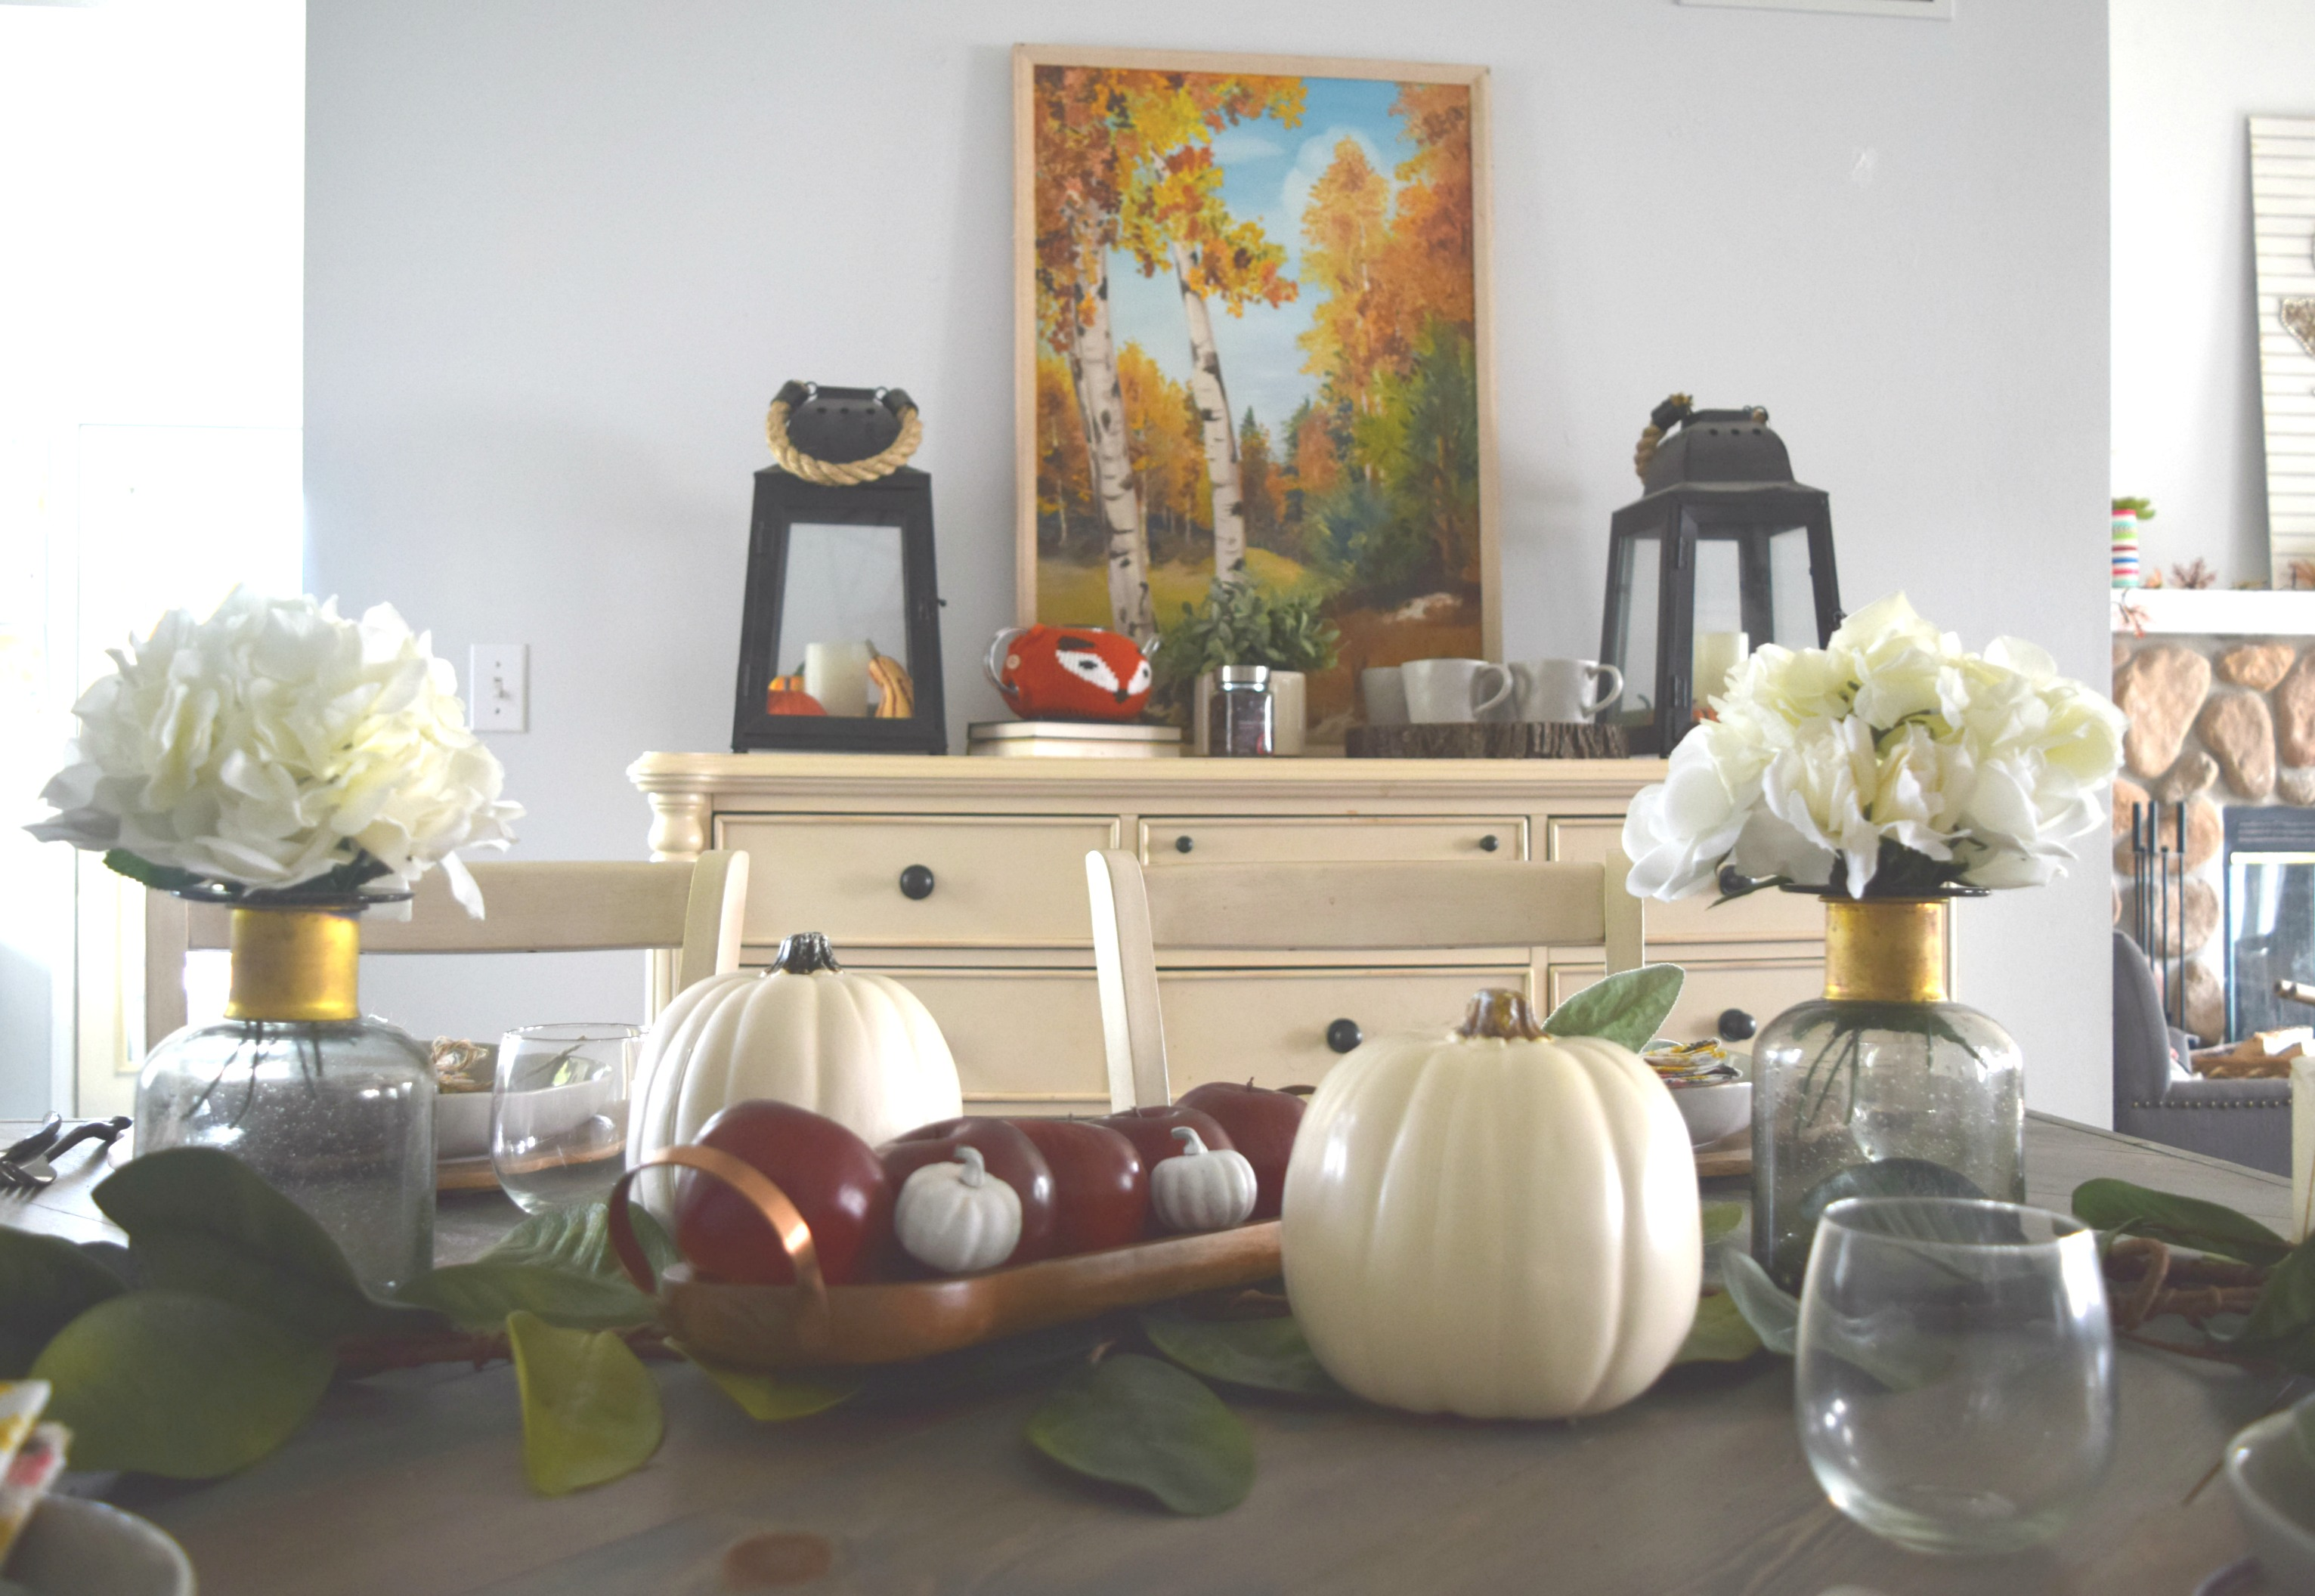 Fall table ideas: for kids and adults with Cost Plus World Market ...